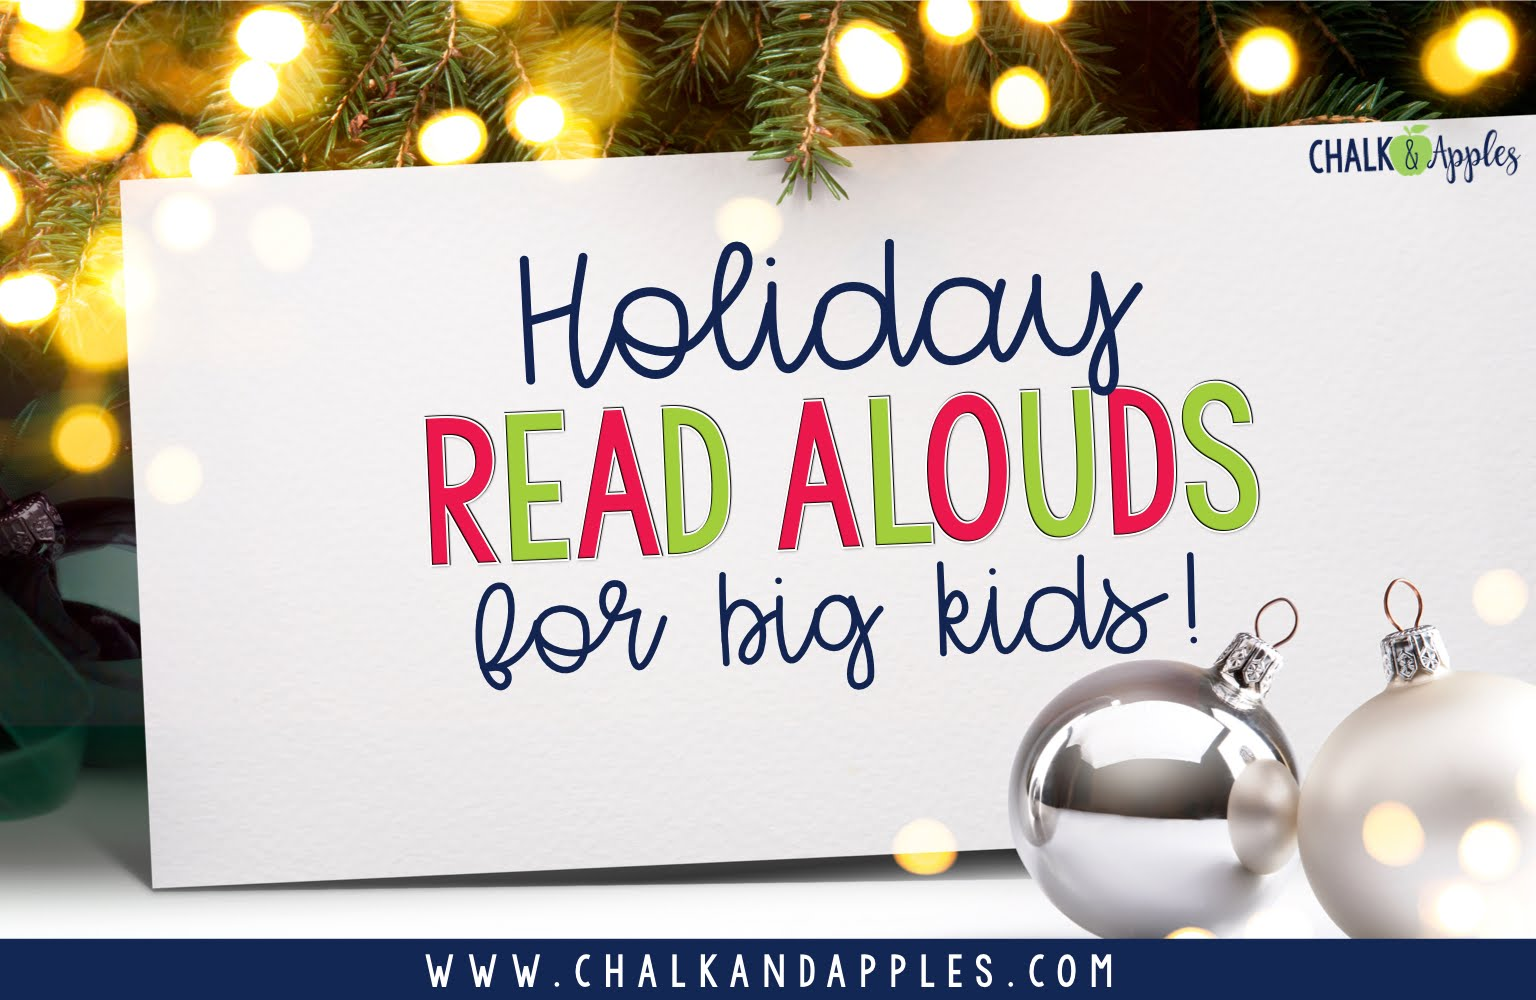 Find some new holiday books to read aloud in your upper elementary class this holiday season!